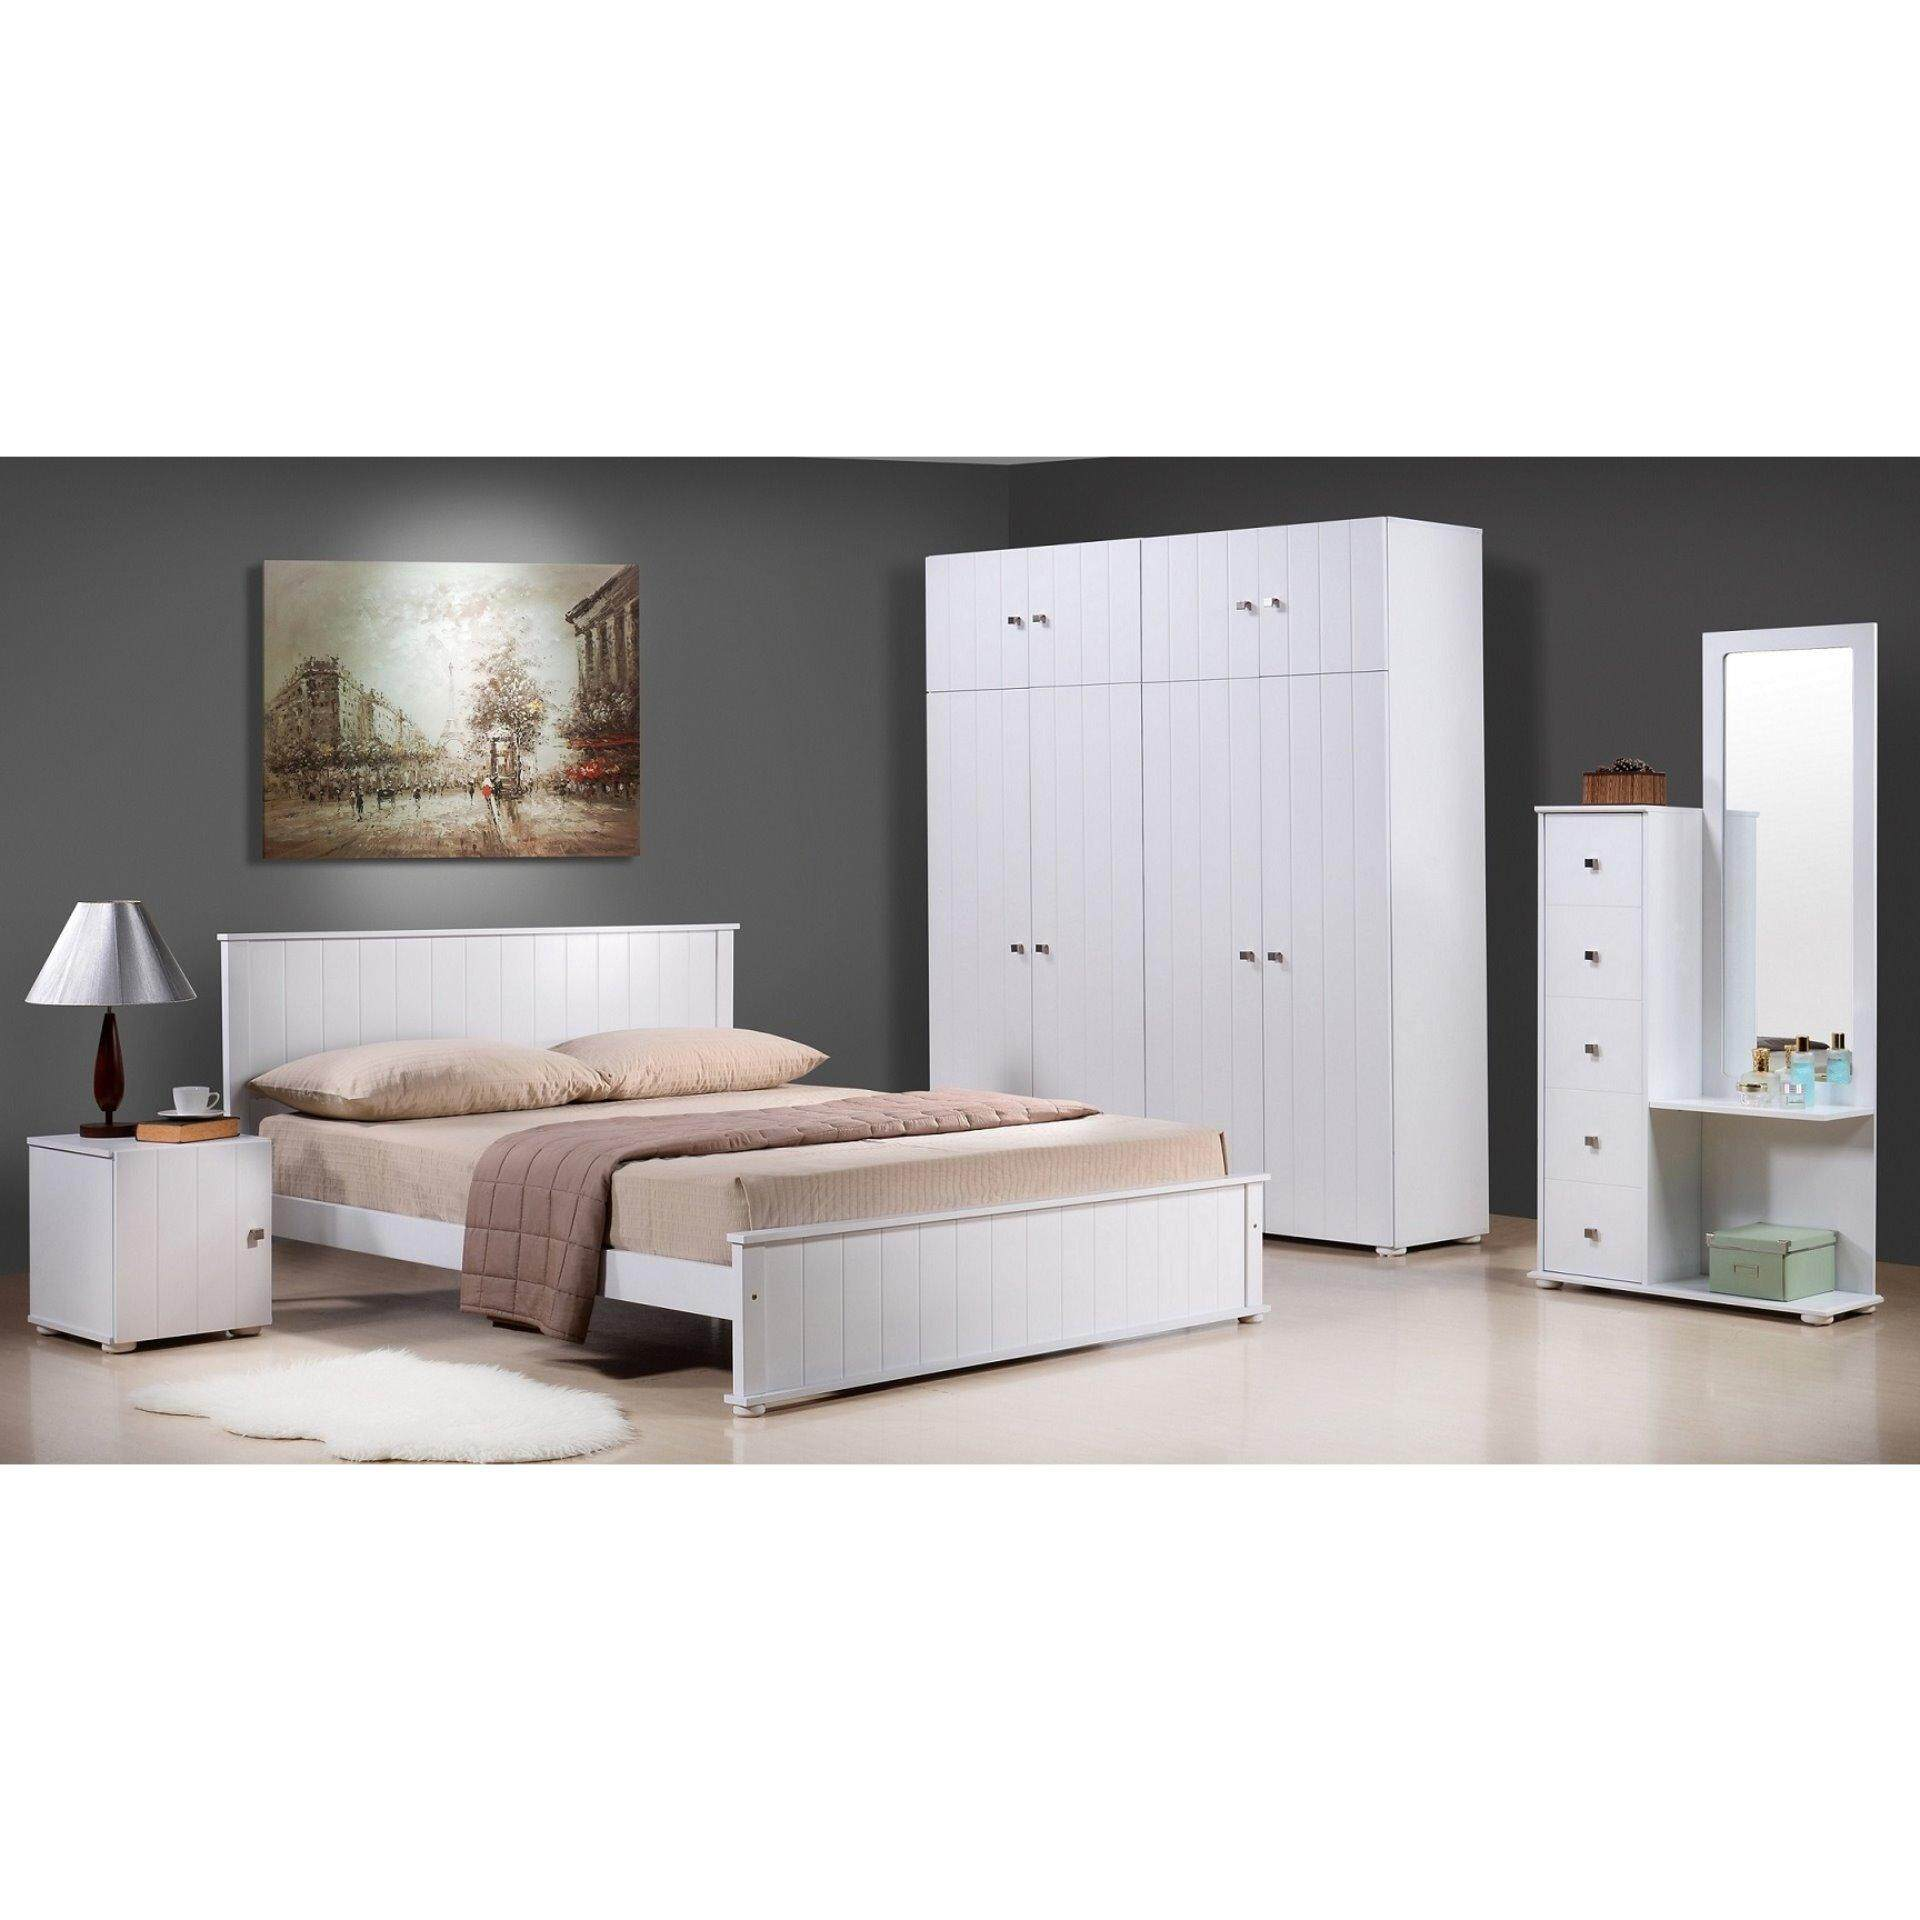 PLZ CM 01050 QUEEN BEDROOM SET WITH 4 DOOR + TOP ( WHITE COLOUR )